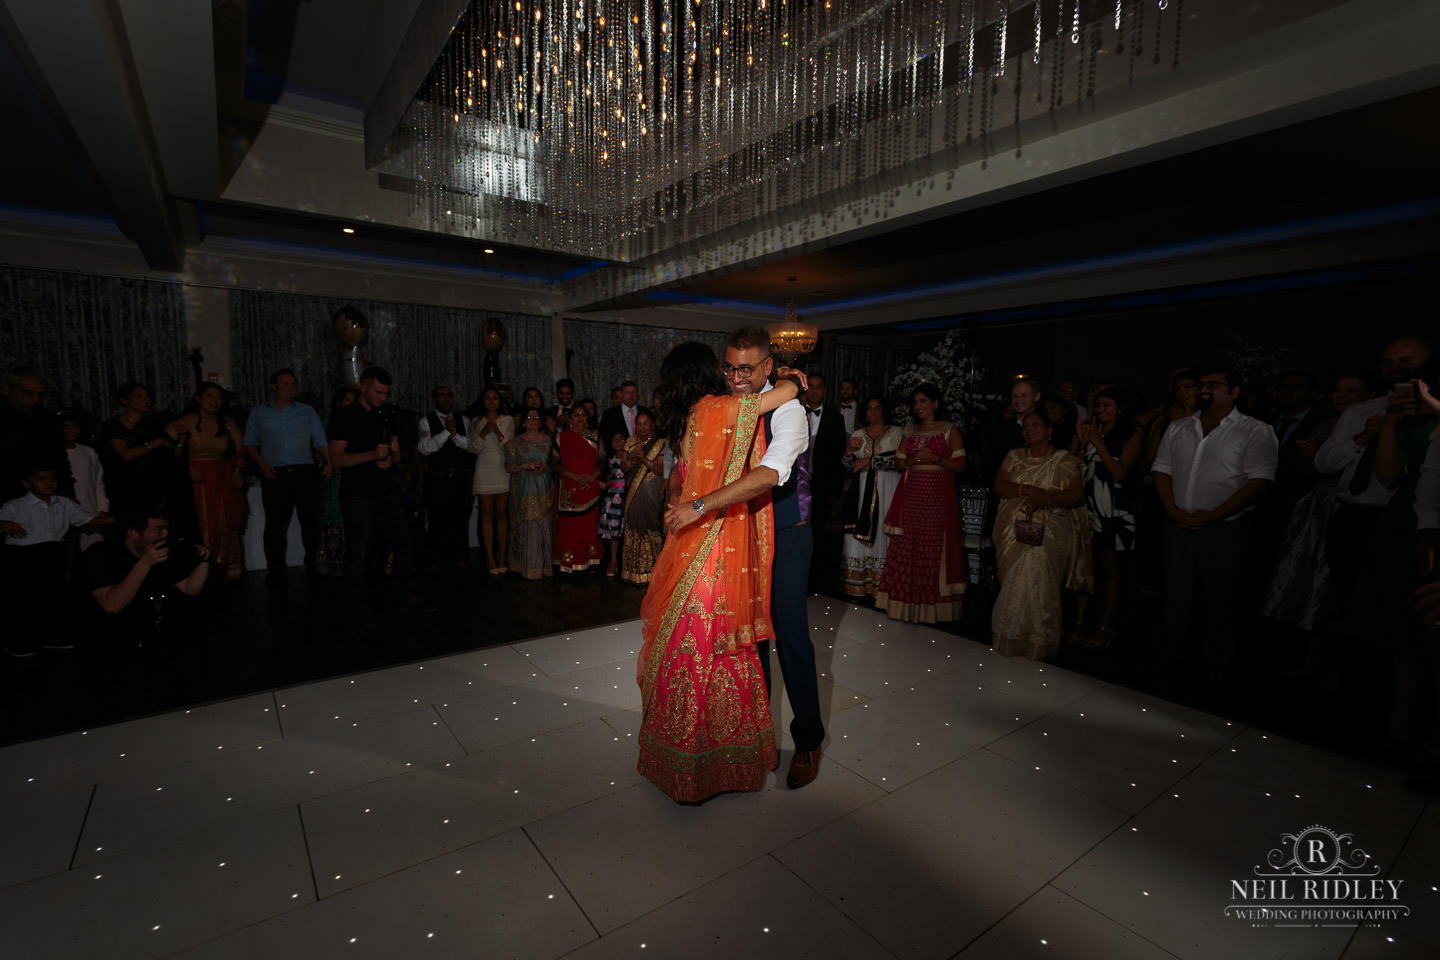 Merrydale Manor Wedding Photographer - Bride and Groom first dance